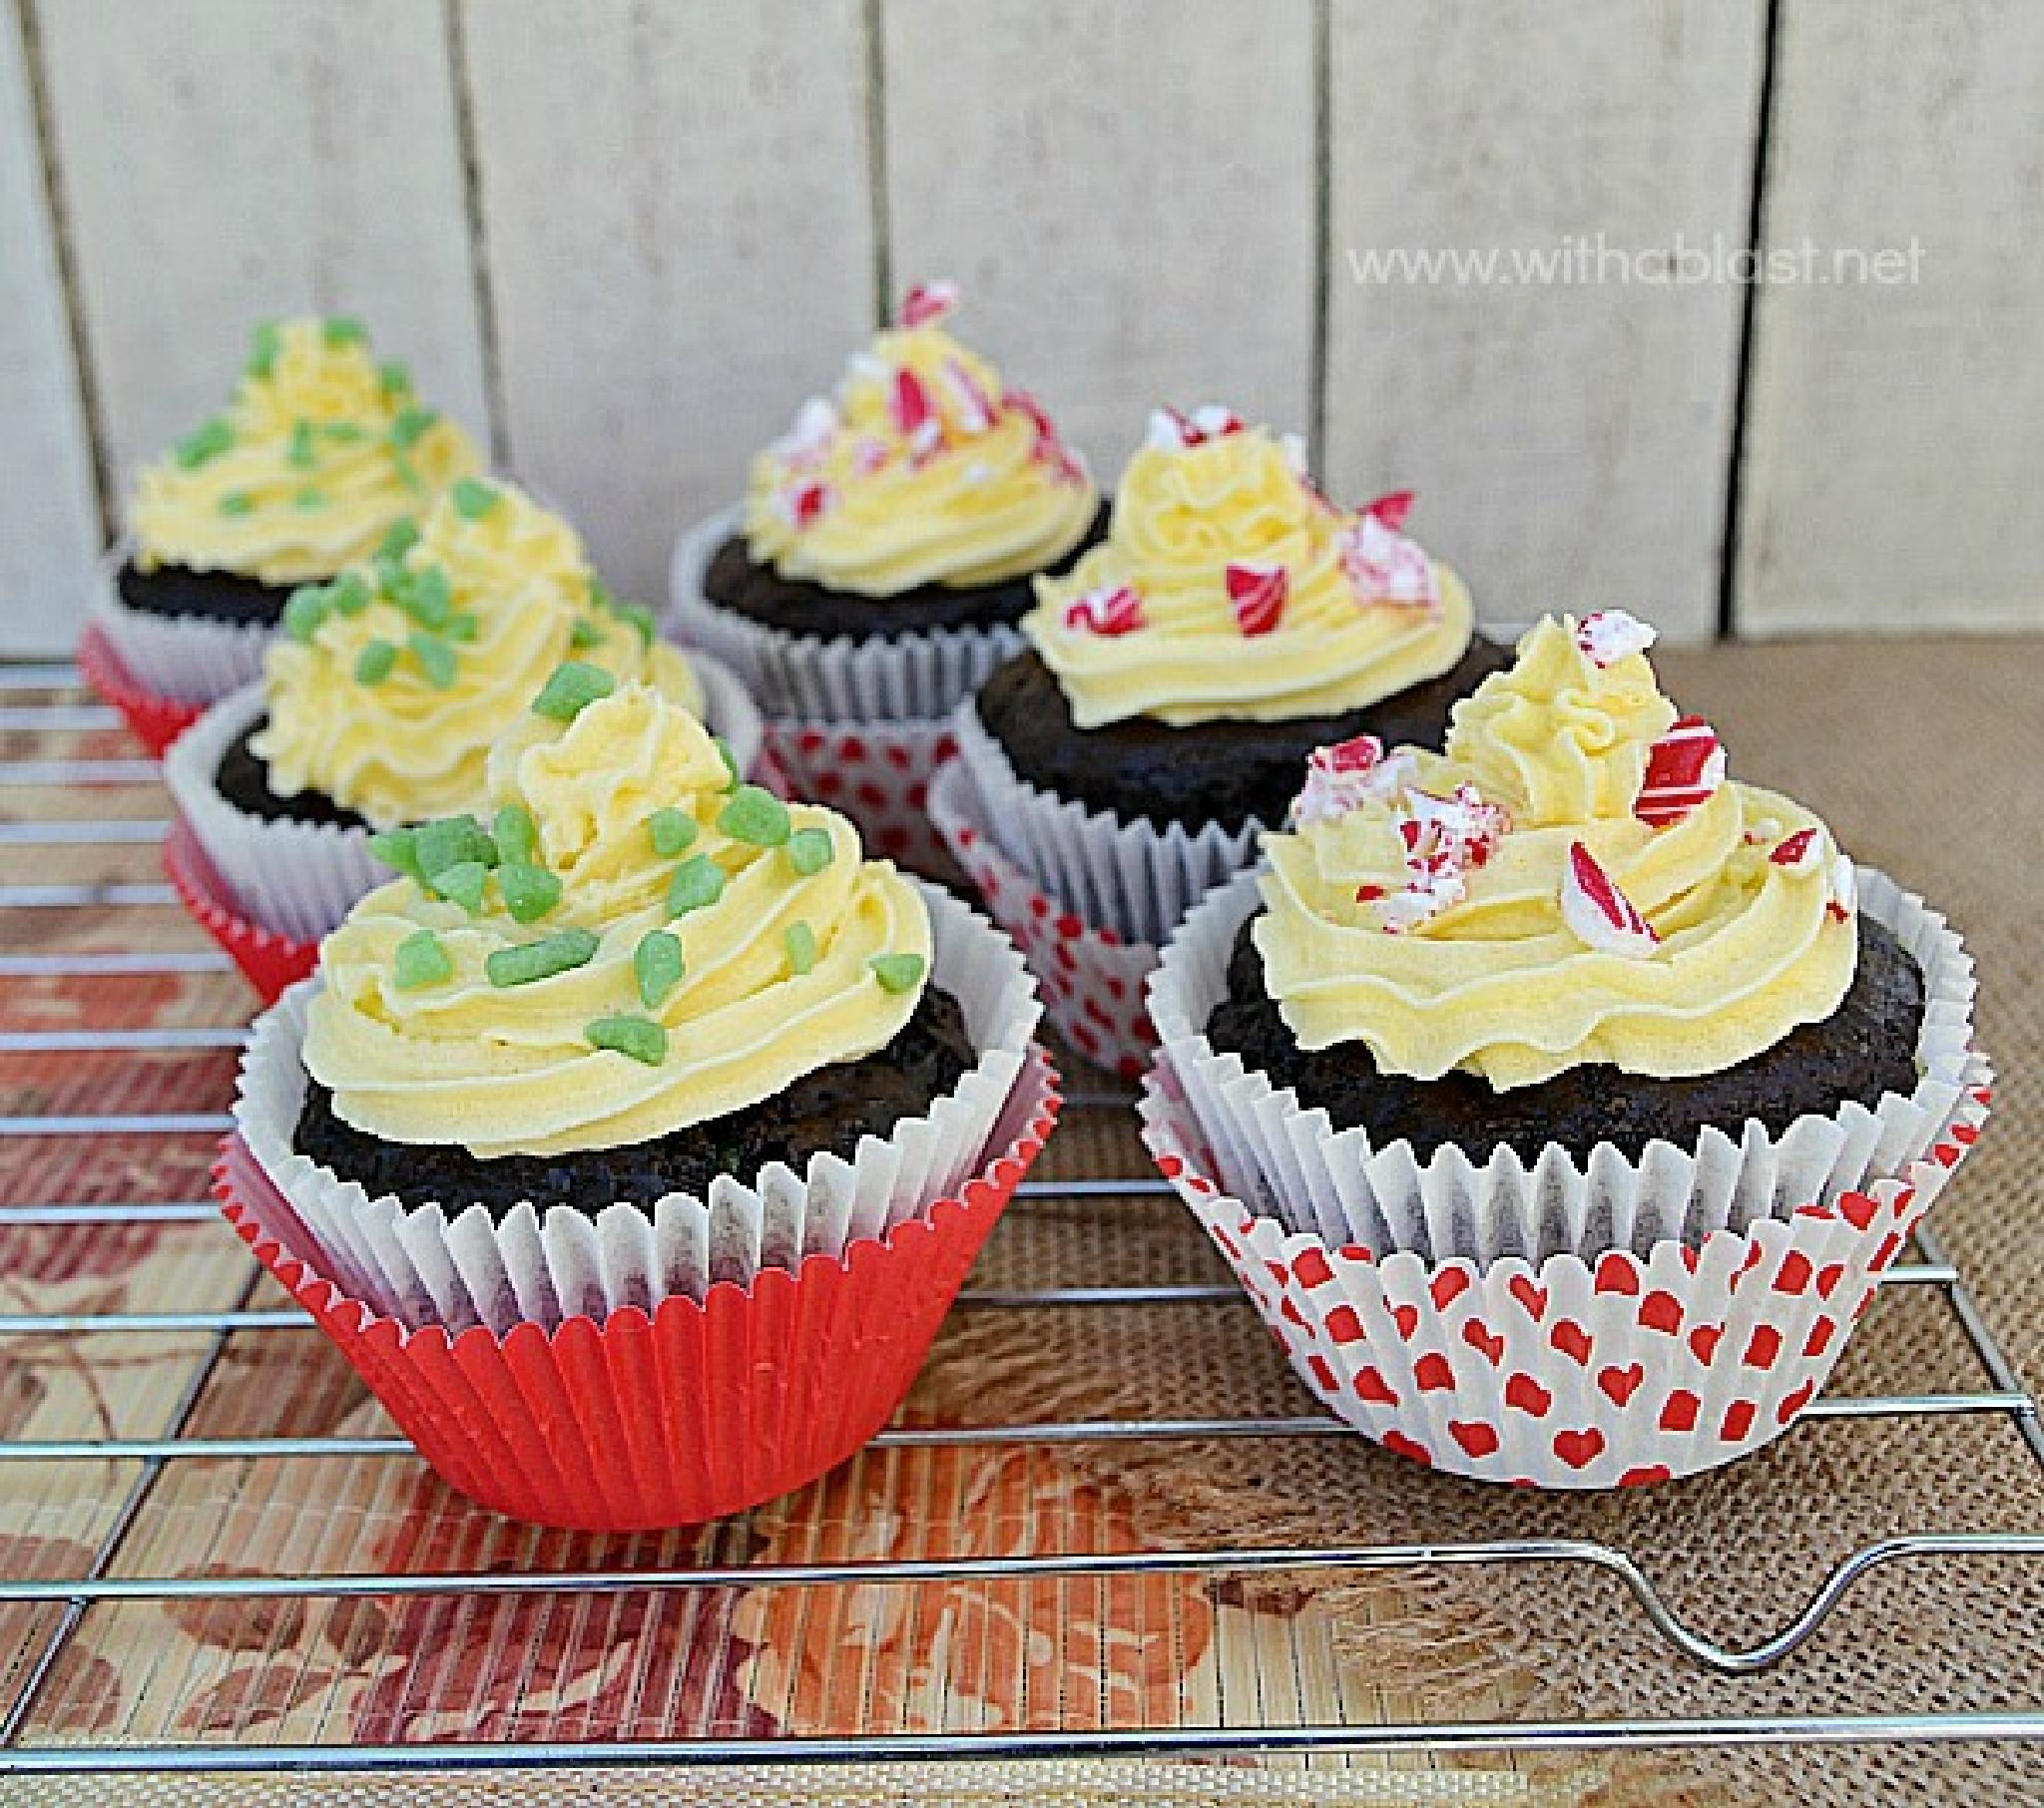 Peppermint Chocolate Cupcakes by Linda Nortje